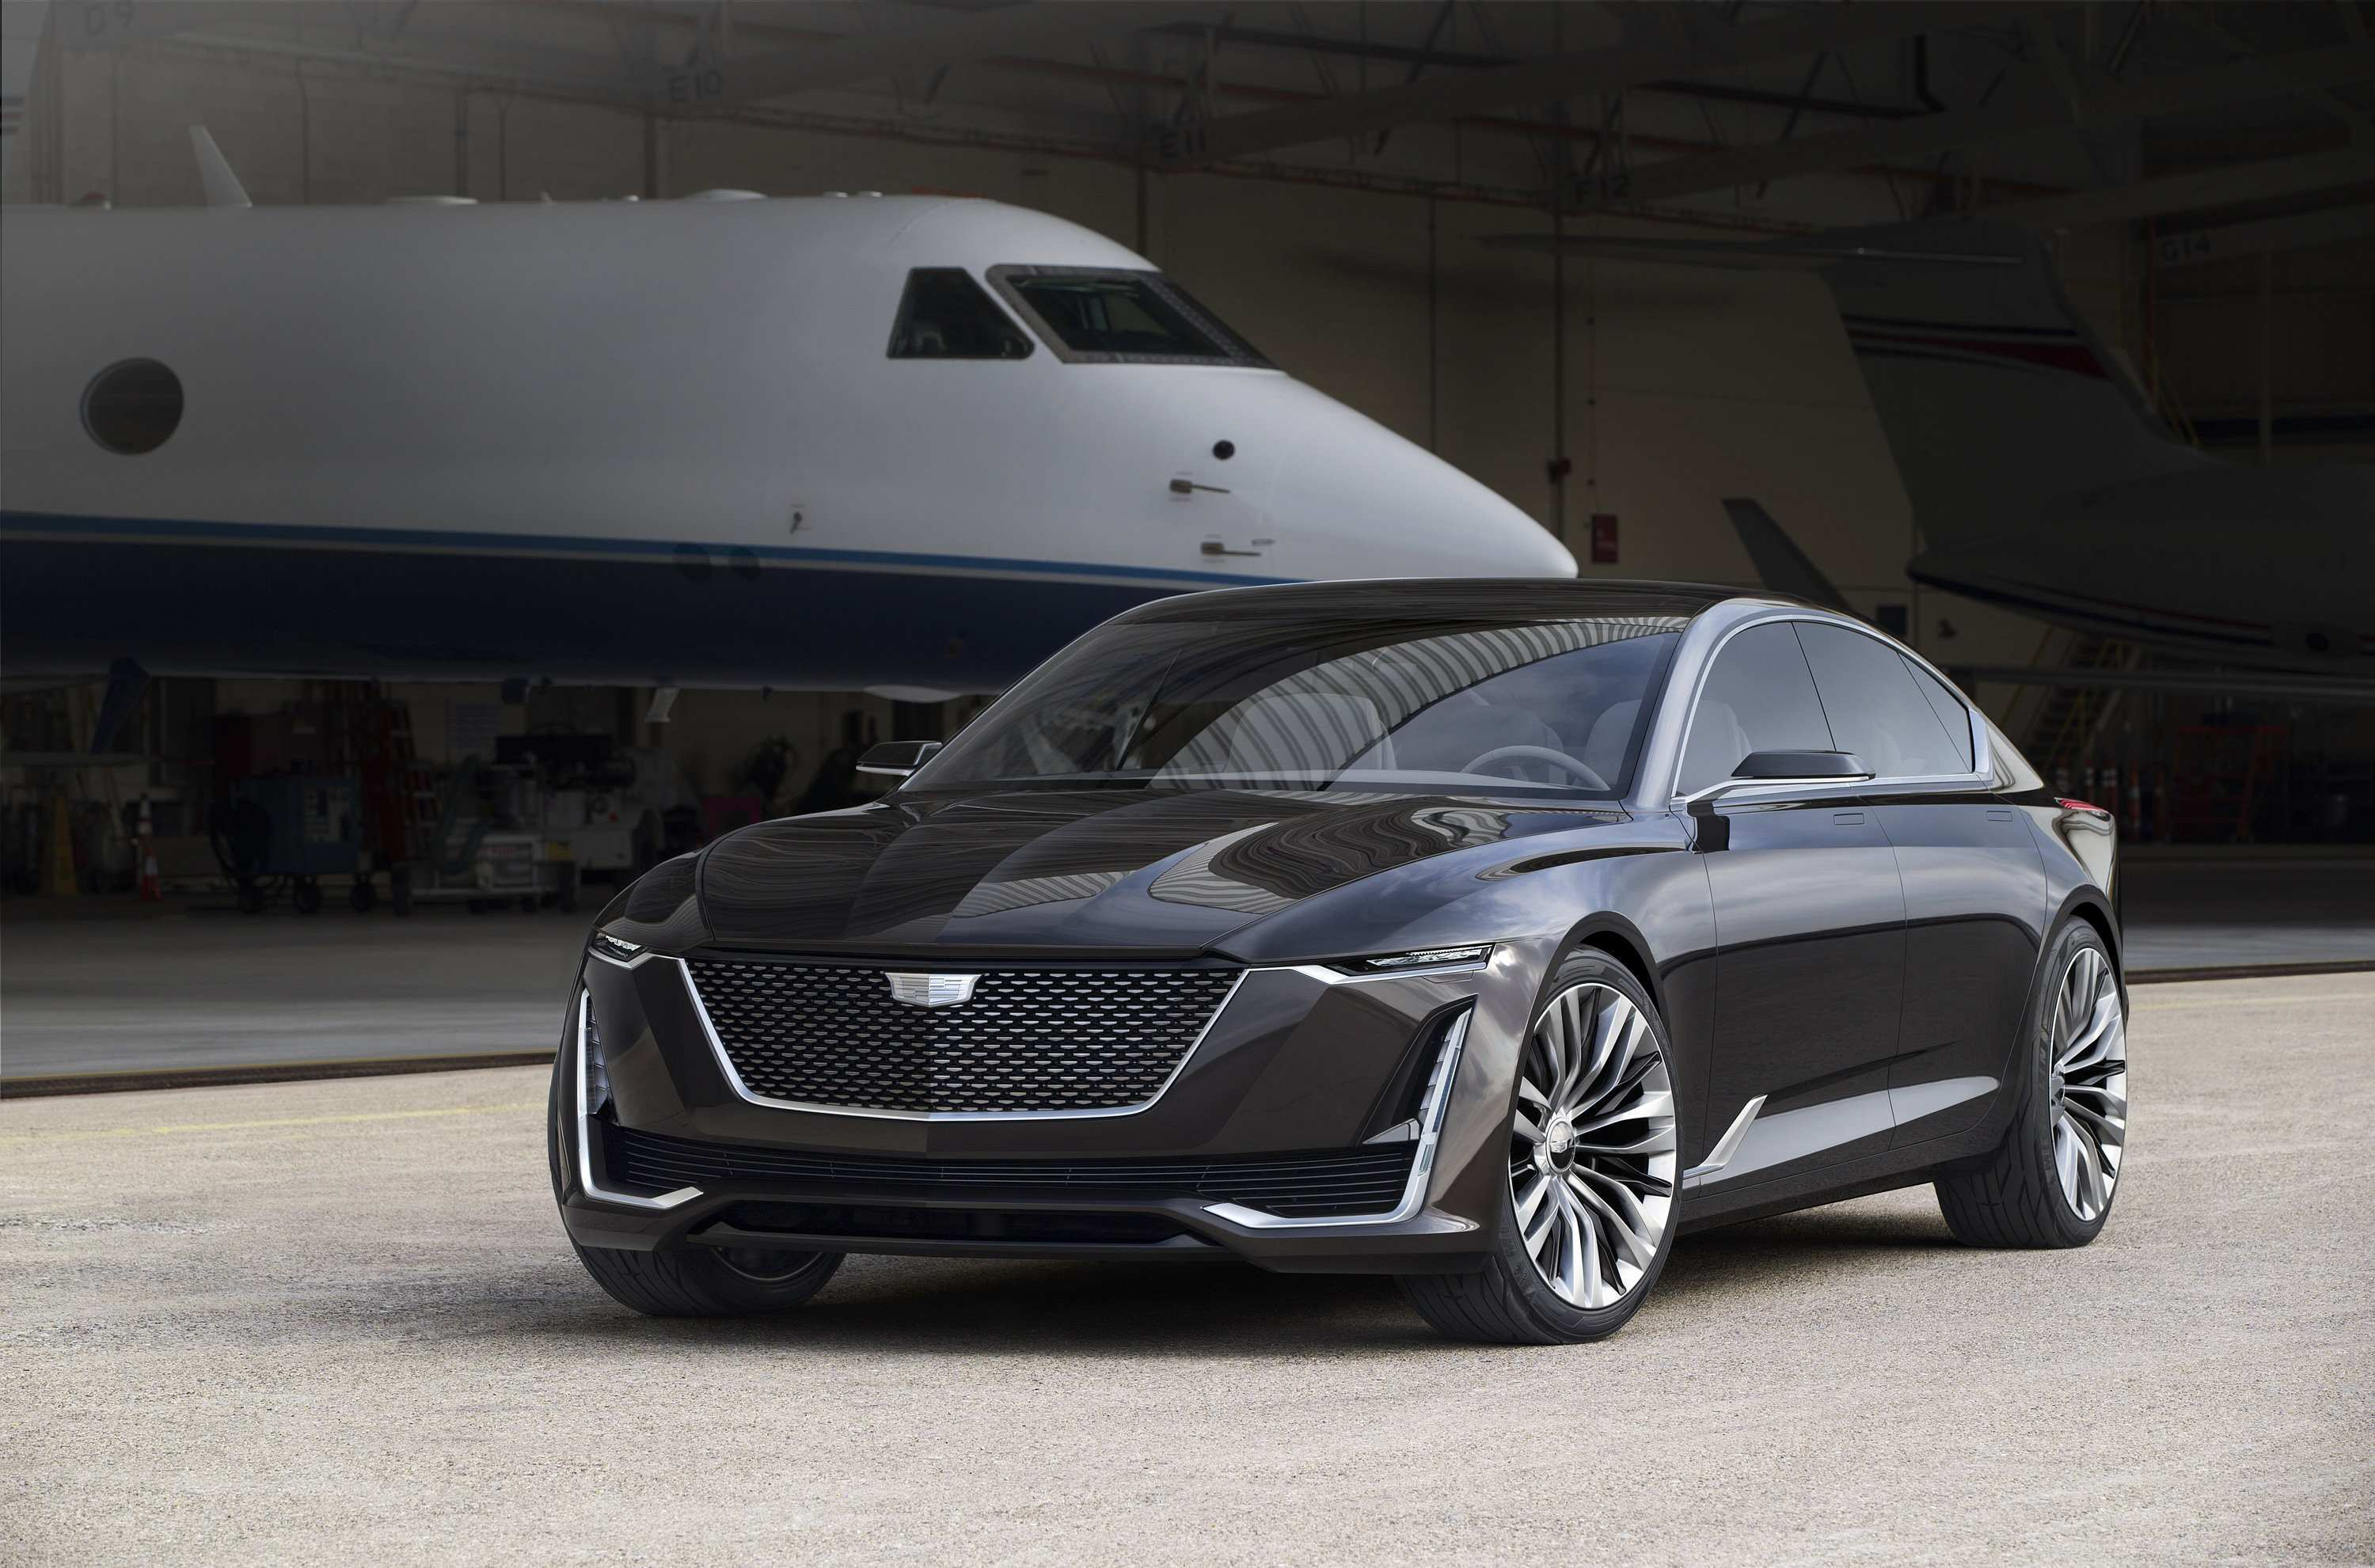 75 New Best Cadillac Ct5 2019 Specs And Review Ratings for Best Cadillac Ct5 2019 Specs And Review